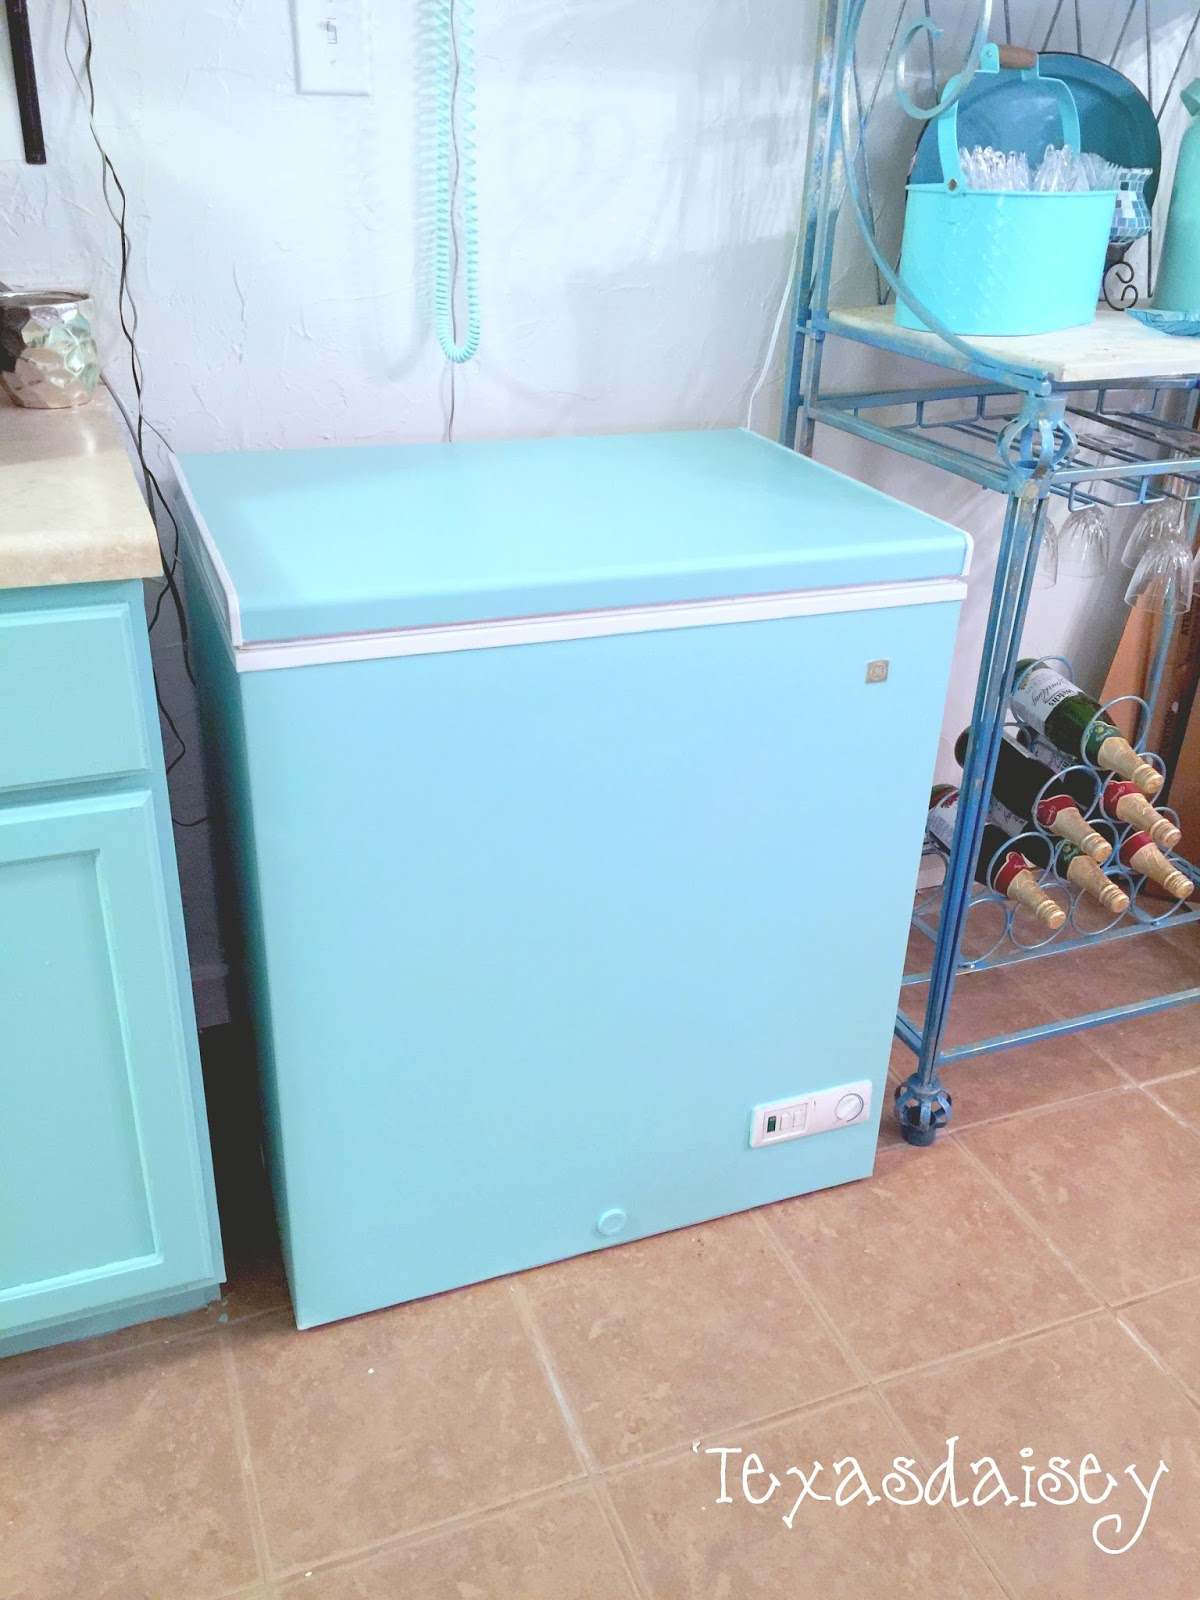 Texasdaisey creations you don 39 t have to be stuck with How to take scratches out of stainless steel appliances